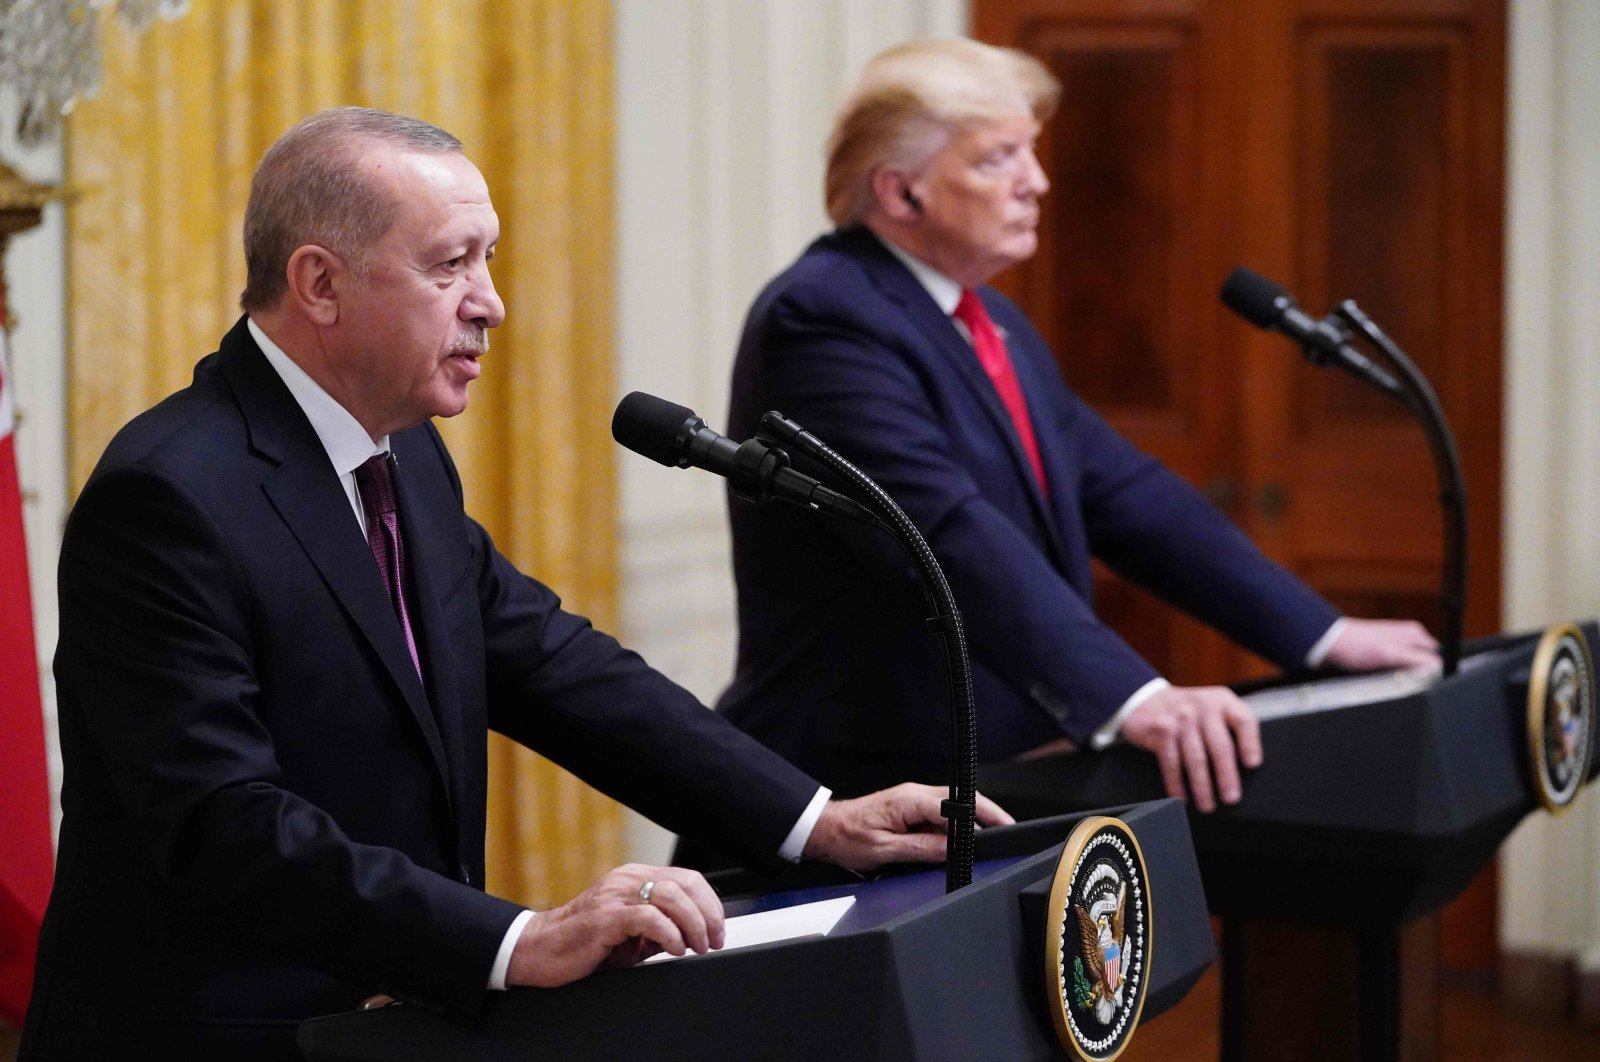 President Recep Tayyip Erdogan and Donald Trump take part in a joint news conference in the East Room of the White House in Washington, D.C., Nov. 13, 2019. (AFP Photo)